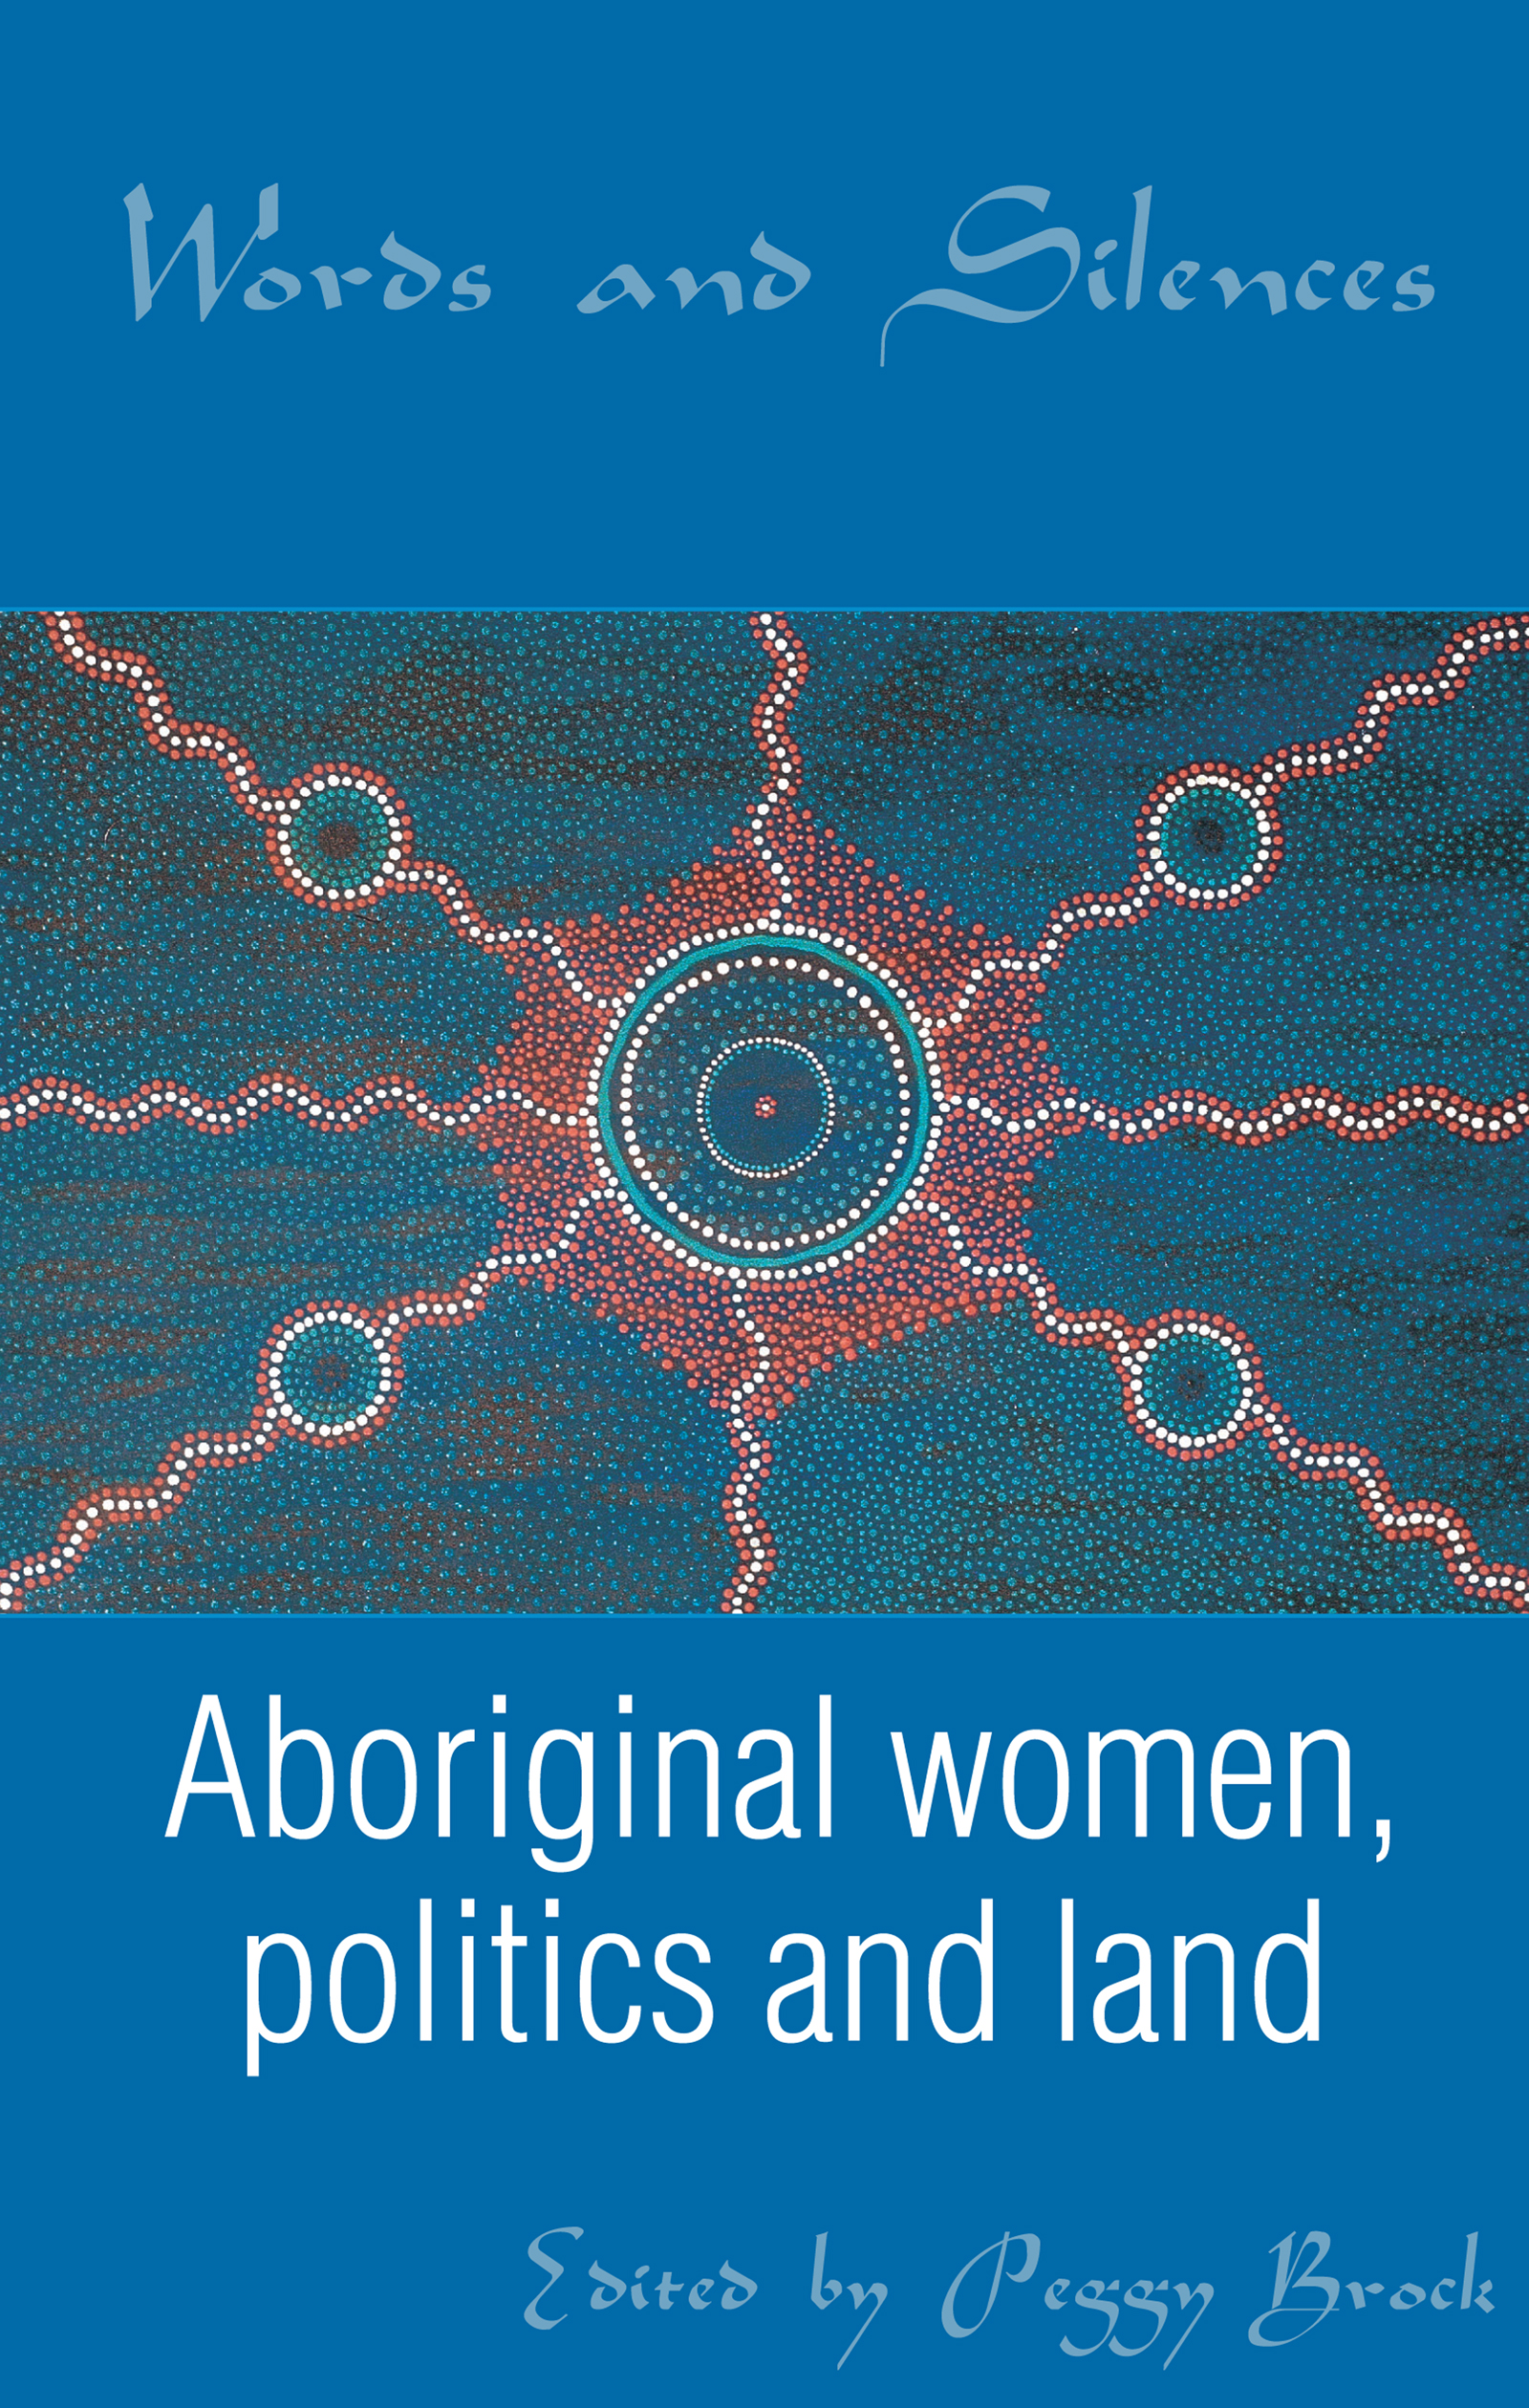 Seeking justice: traditions of social action among Indigenous women in the southwest of Western Australia                      1